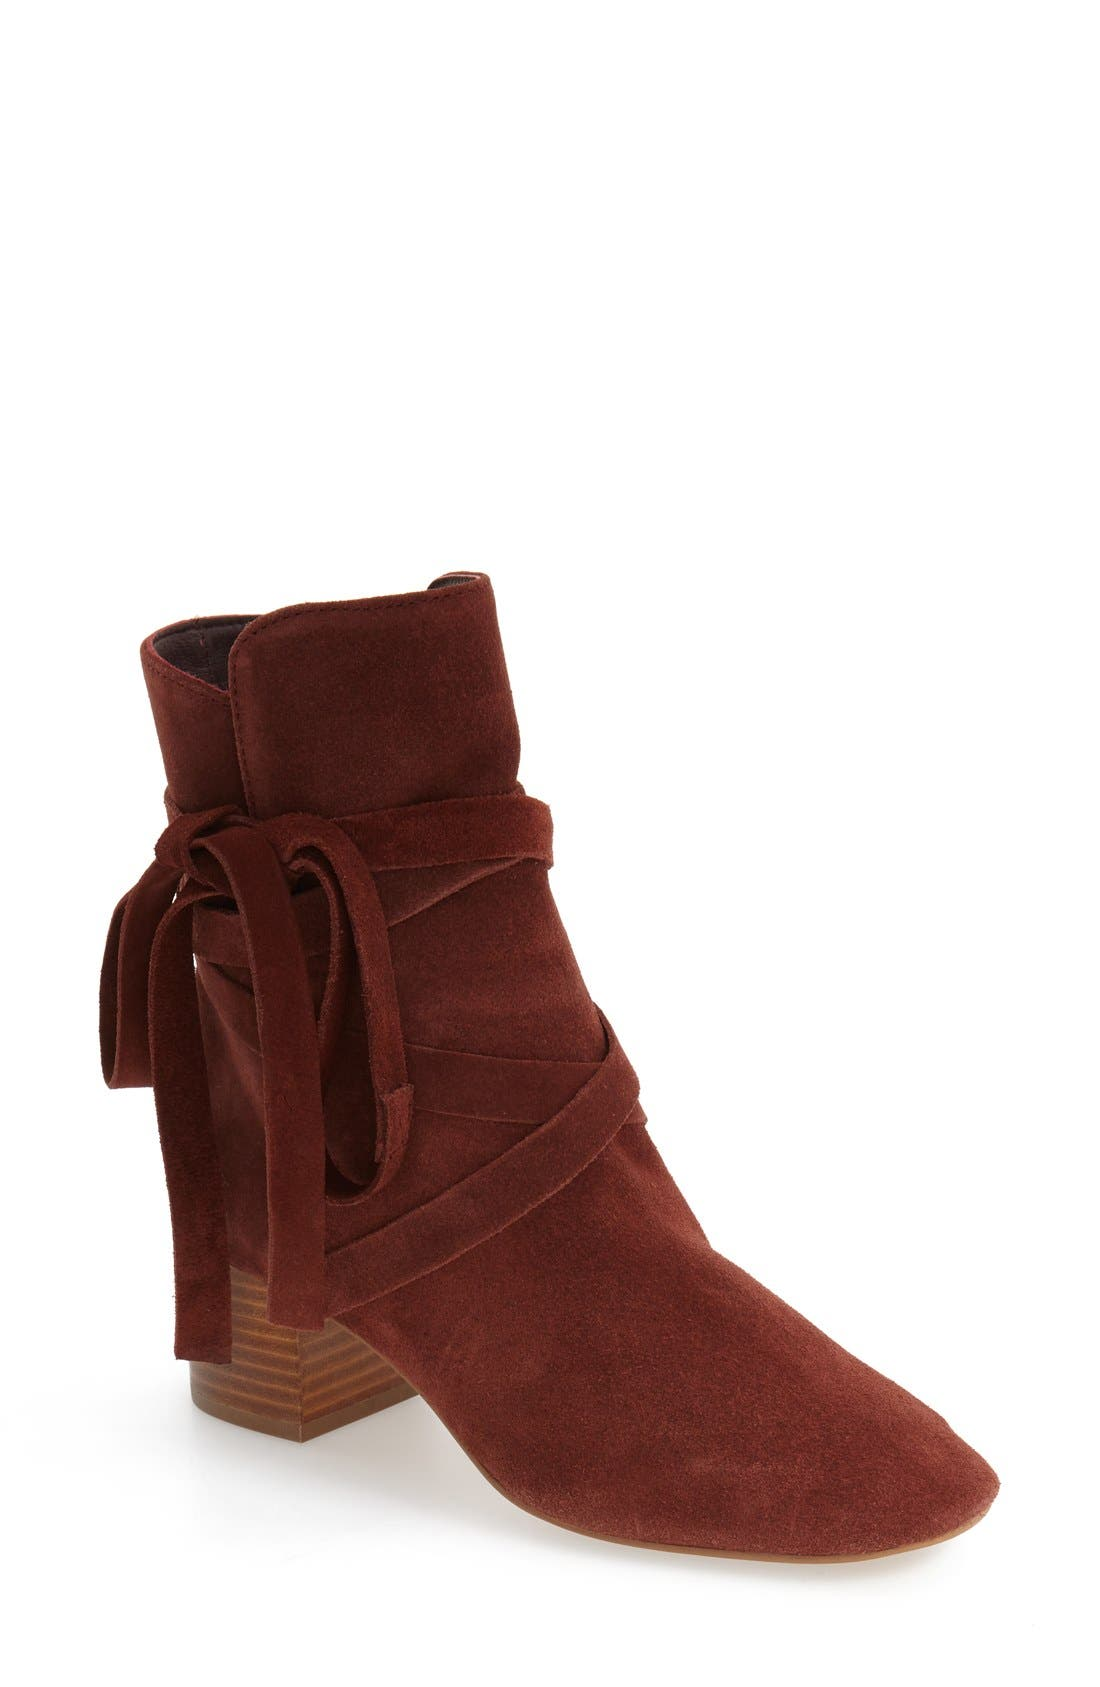 Alternate Image 1 Selected - Topshop 'Anabel' Lace-Up Boots (Women)